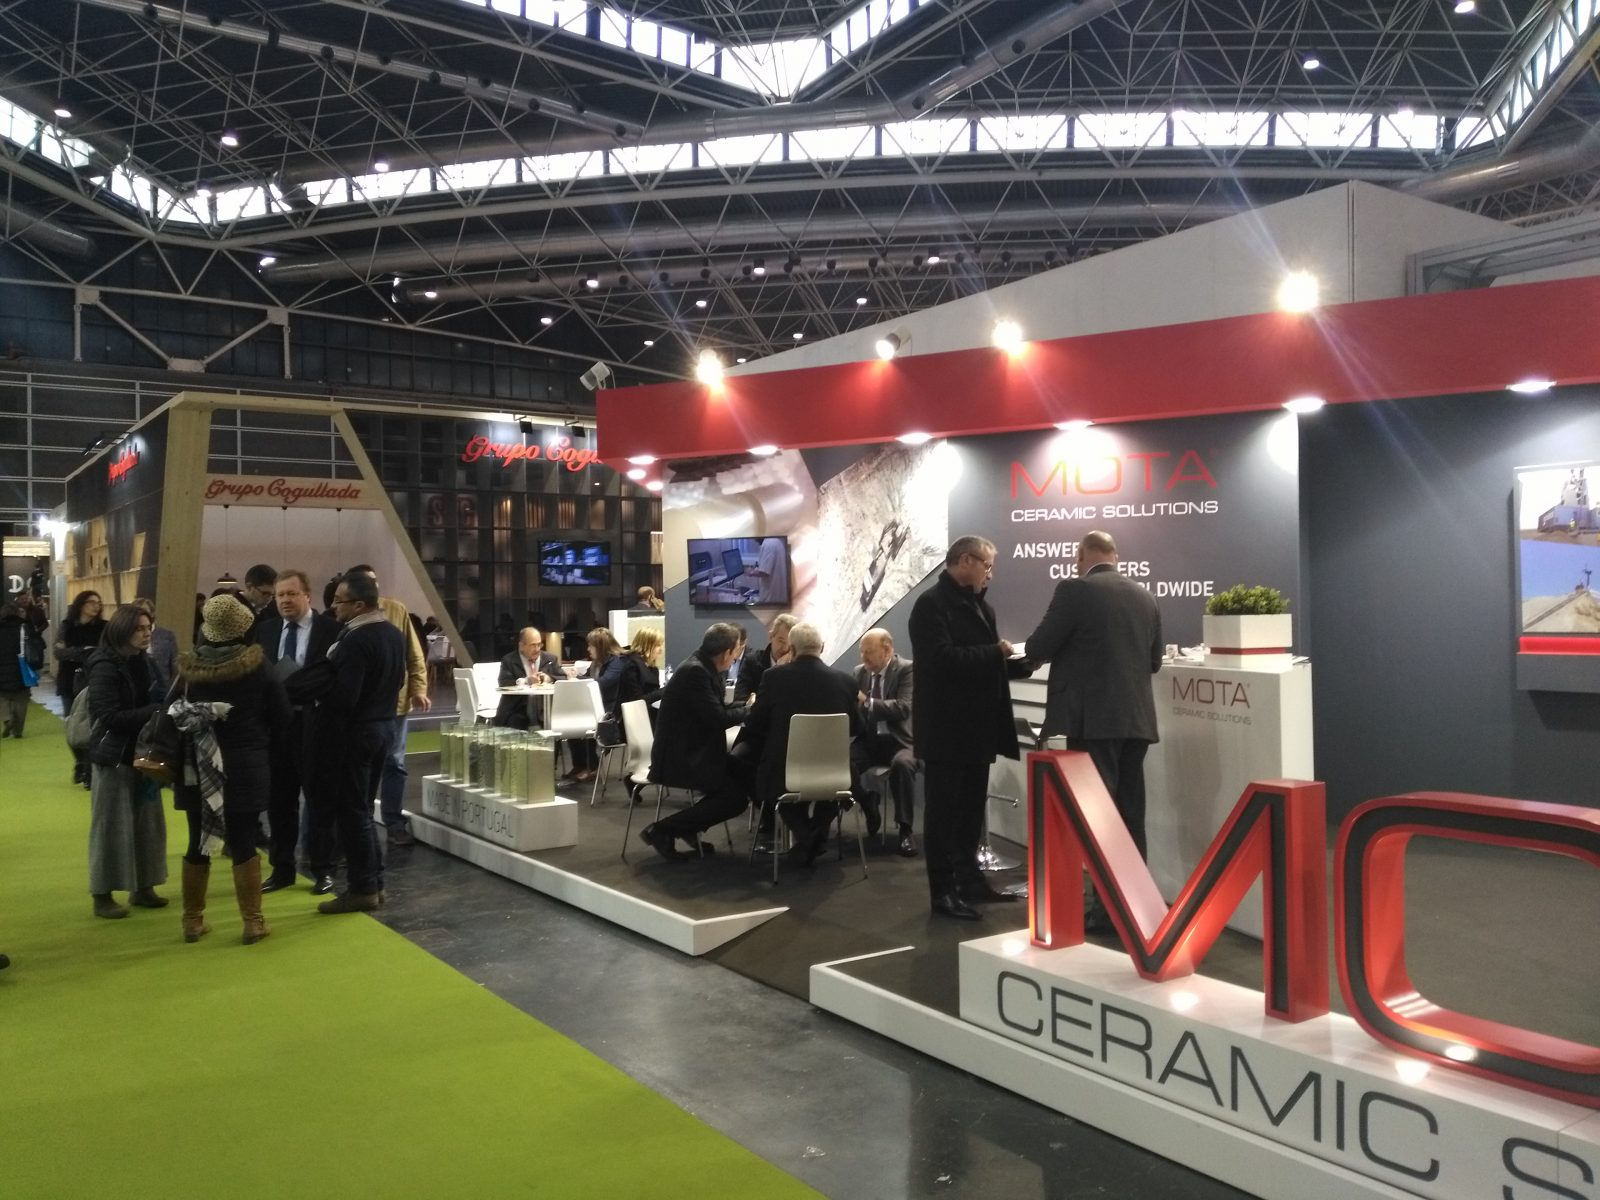 Cevisama 2018 mota ceramic solutions for Cevisama 2018